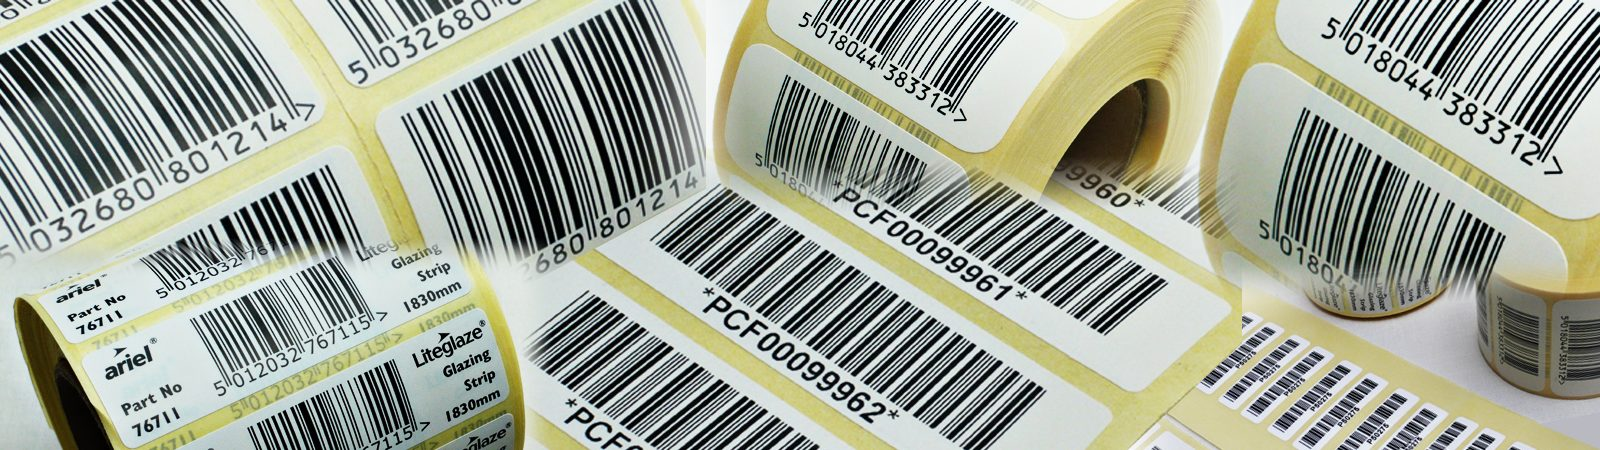 Image of printed barcode labels with adhesive stickers